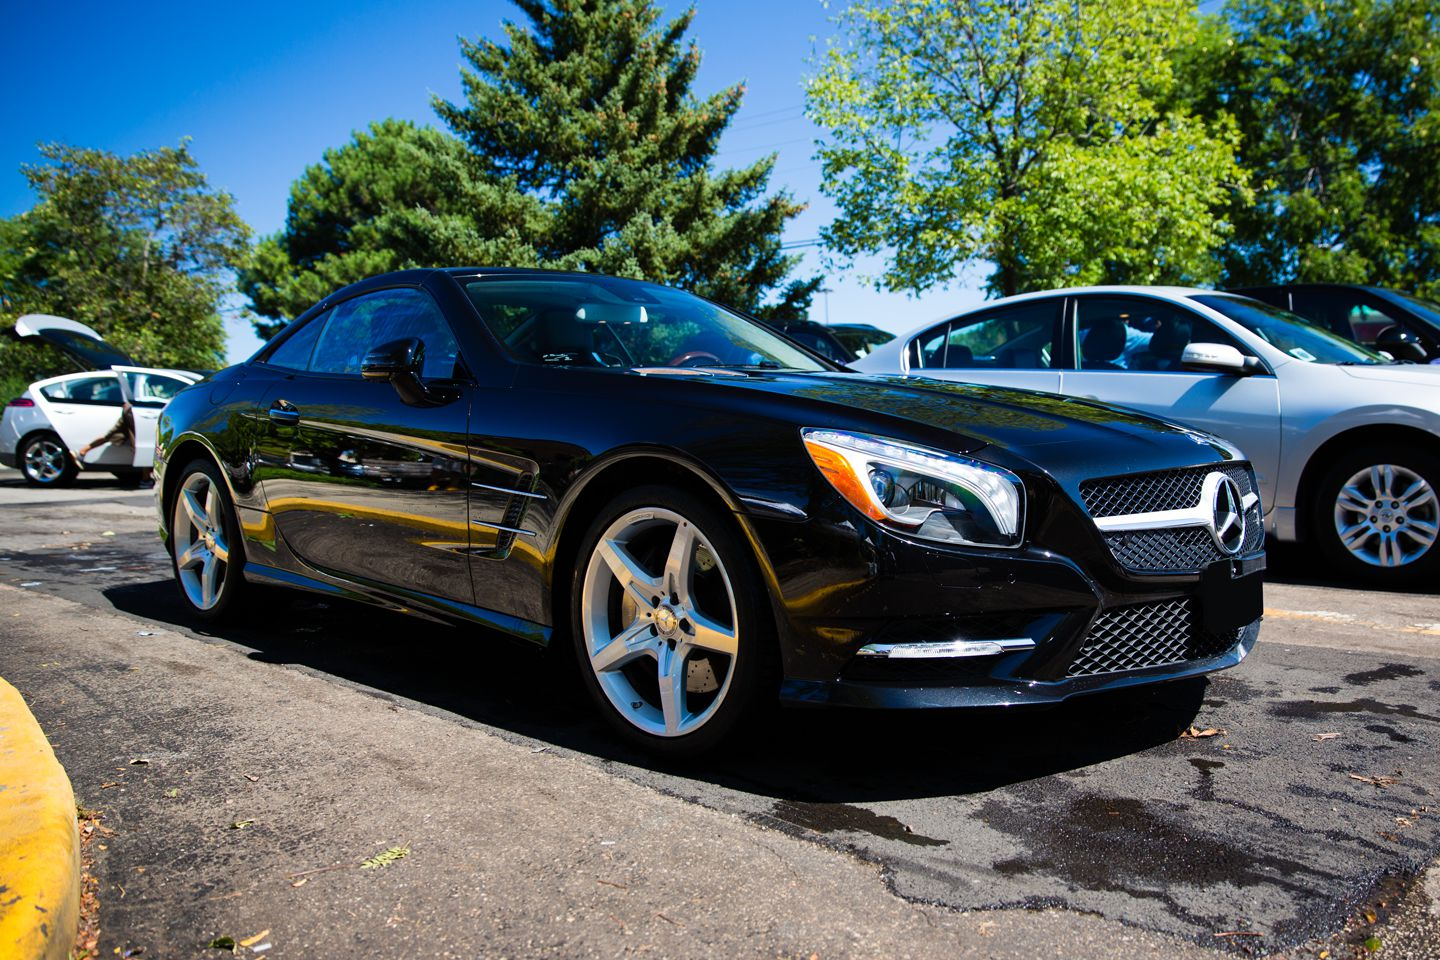 crossroads car wash photography of clean luxury car by jacob rosenfeld photography